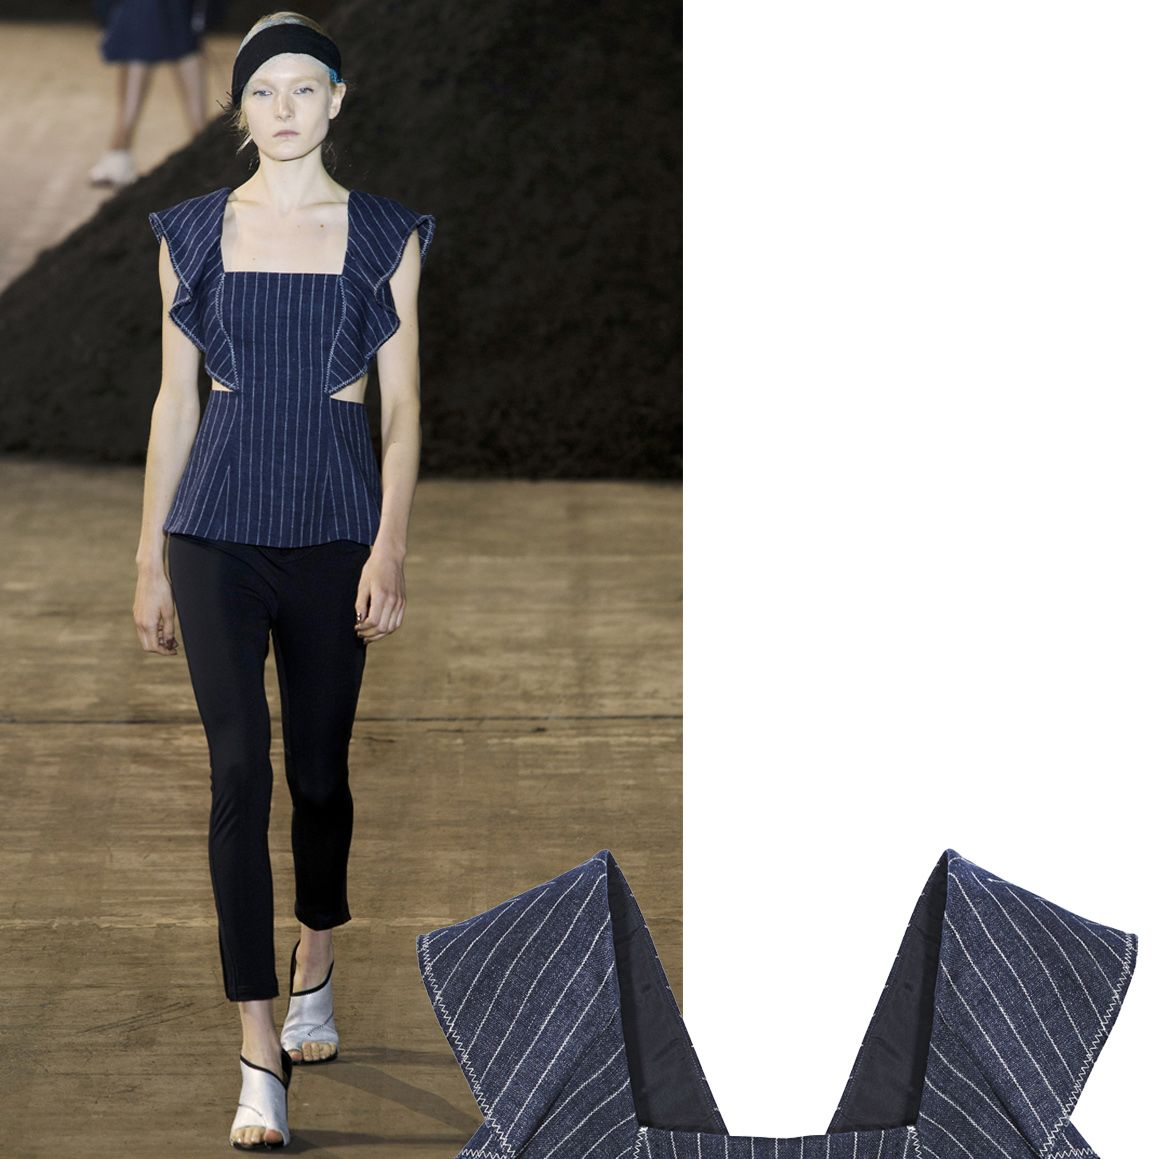 """<p>""""Pinstripes are timeless and effortlessly cool, however, we wanted to kick things around so we applied the pinstripe to dress shapes with revealing side openings, lightweight linen tops, and sporty separates—new essentials for spring days in the sun.""""—Phillip Lim  </p><p>        <em><strong>3.1 Phillip Lim </strong>top, $495, <strong><a href=""""https://shop.harpersbazaar.com/designers/0-9/31-phillip-lim/pinstripe-cascading-sleeve-top-8426.html"""" target=""""_blank"""">shopBAZAAR.com</a></strong></em><span class=""""redactor-invisible-space""""><em>.</em><br></span></p>"""